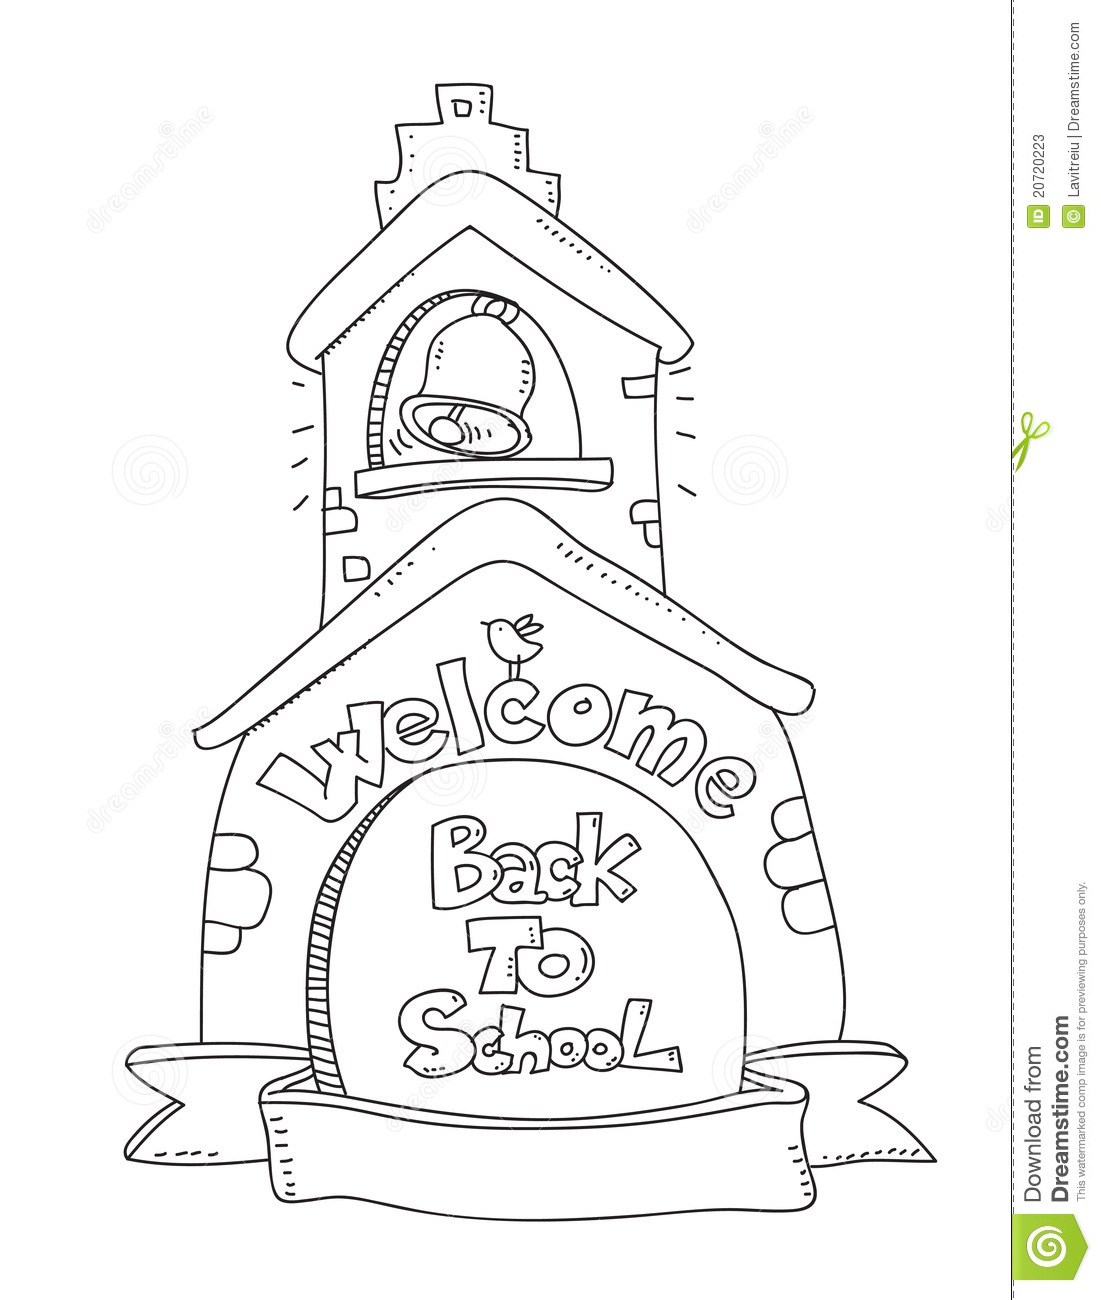 back to school stock vector. illustration of copy, door - 20720223